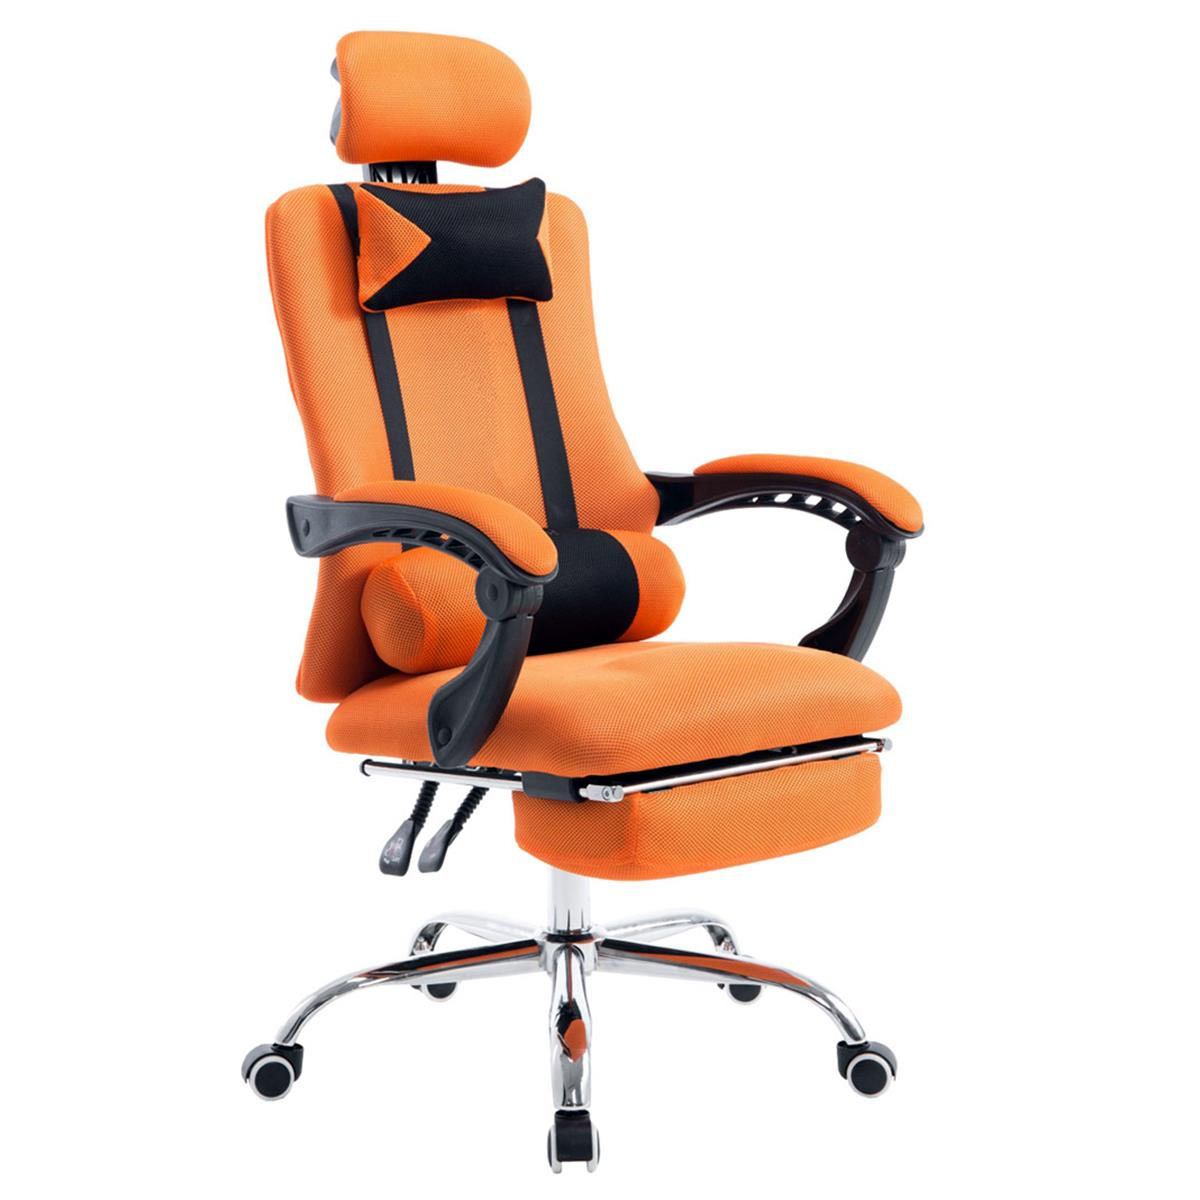 Silla de Oficina / Gaming  ANTARES, Reclinable, Reposapiés Extensible, en Malla Transpirable color Naranja